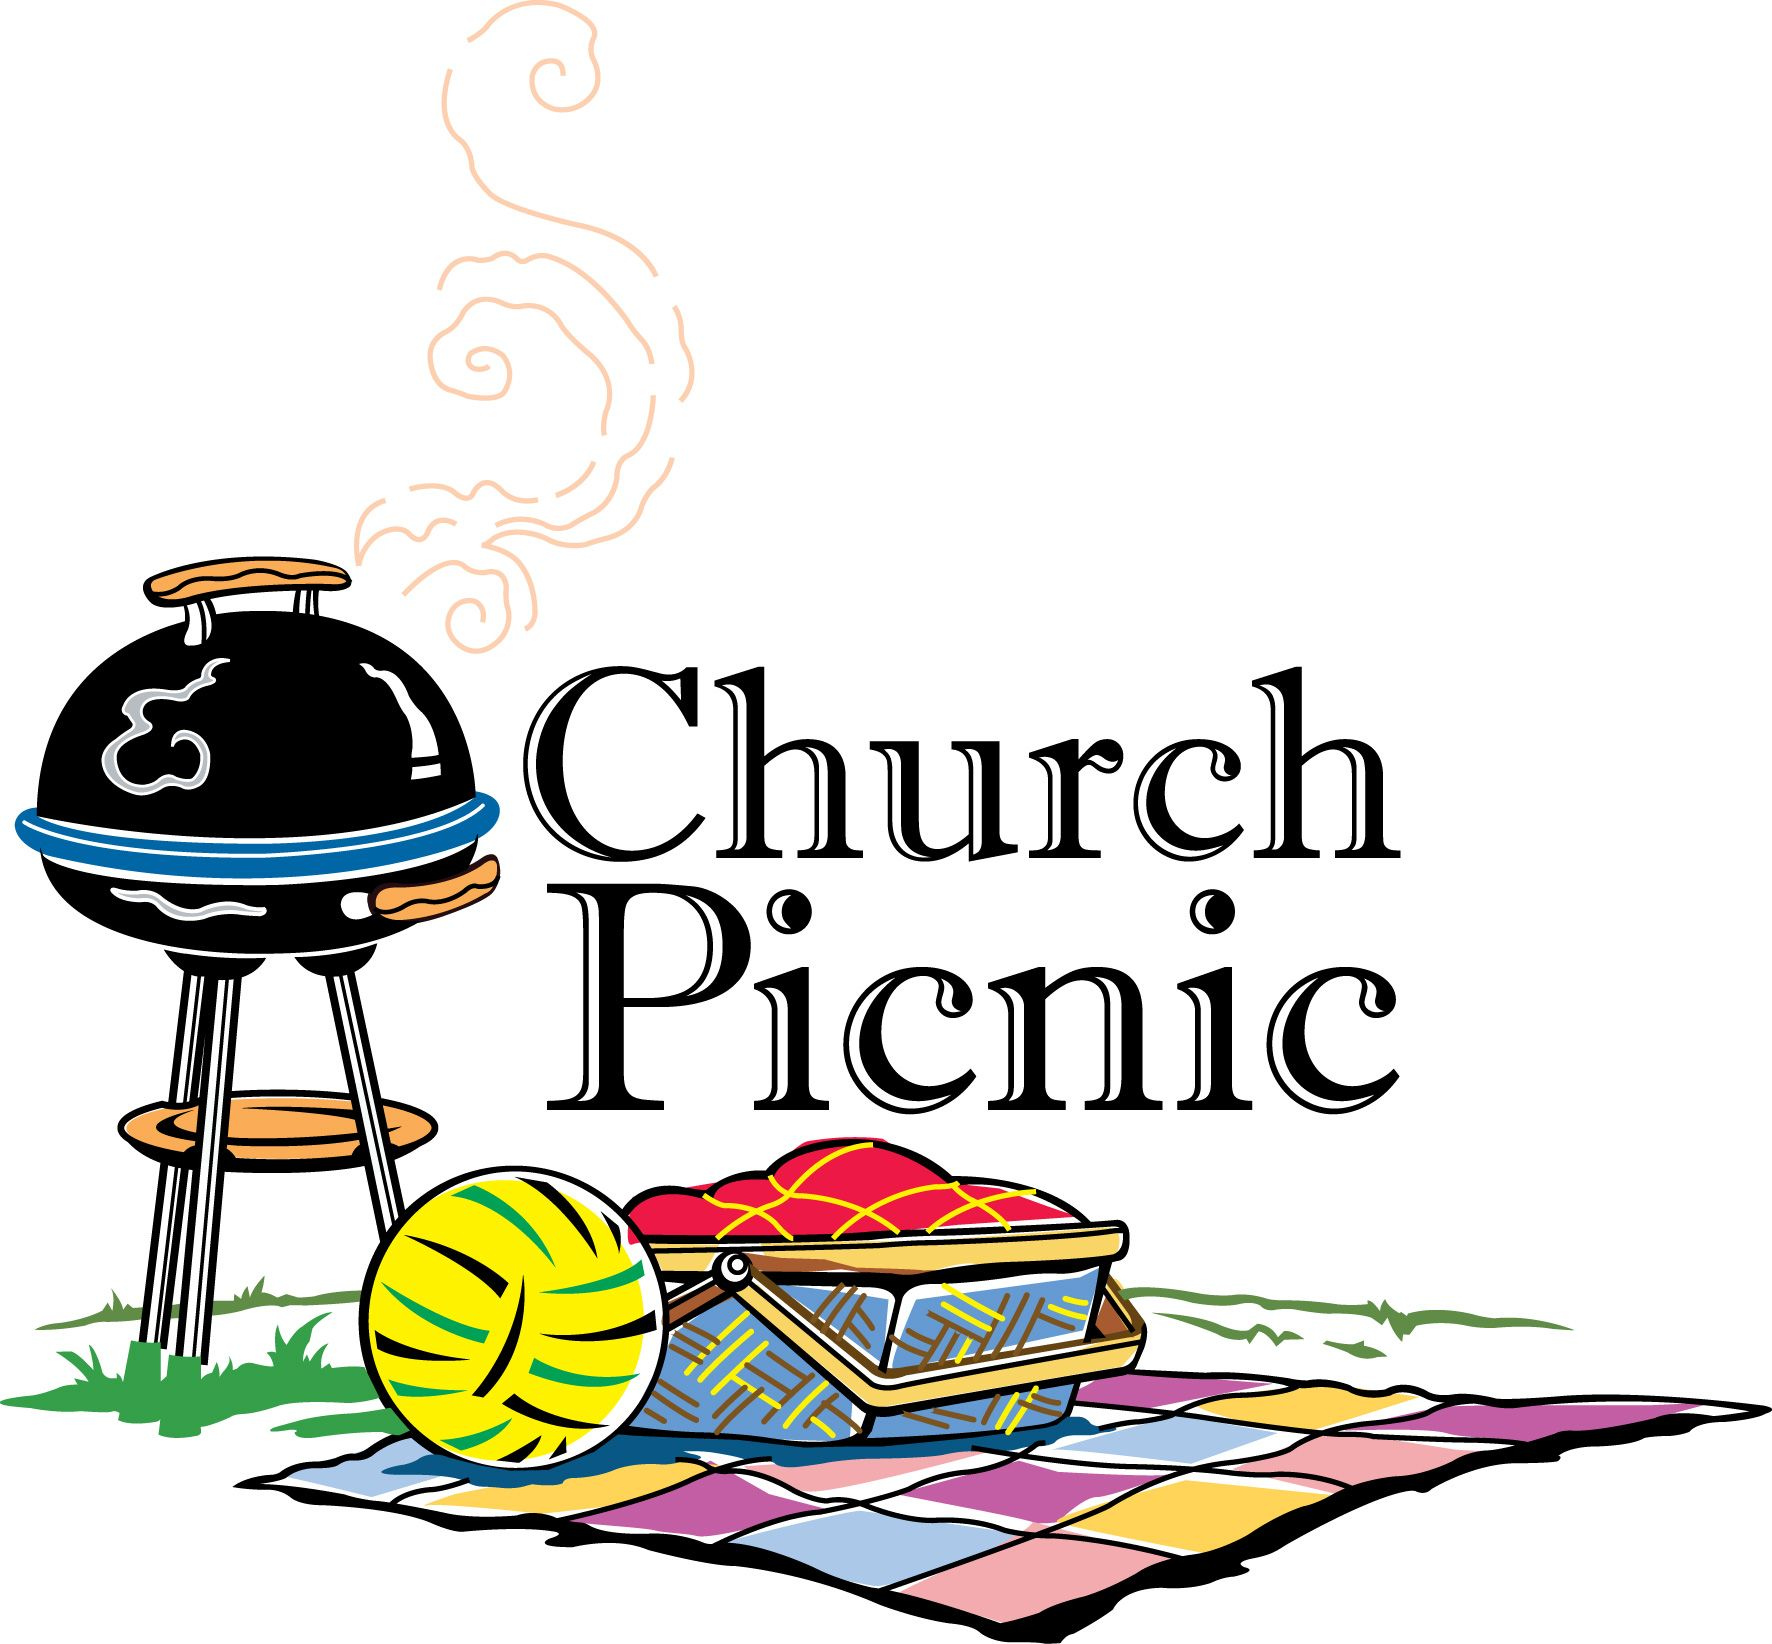 Youth outreach trip planning clipart image royalty free Company Picnic Clipart | Clipart Panda - Free Clipart Images | party ... image royalty free